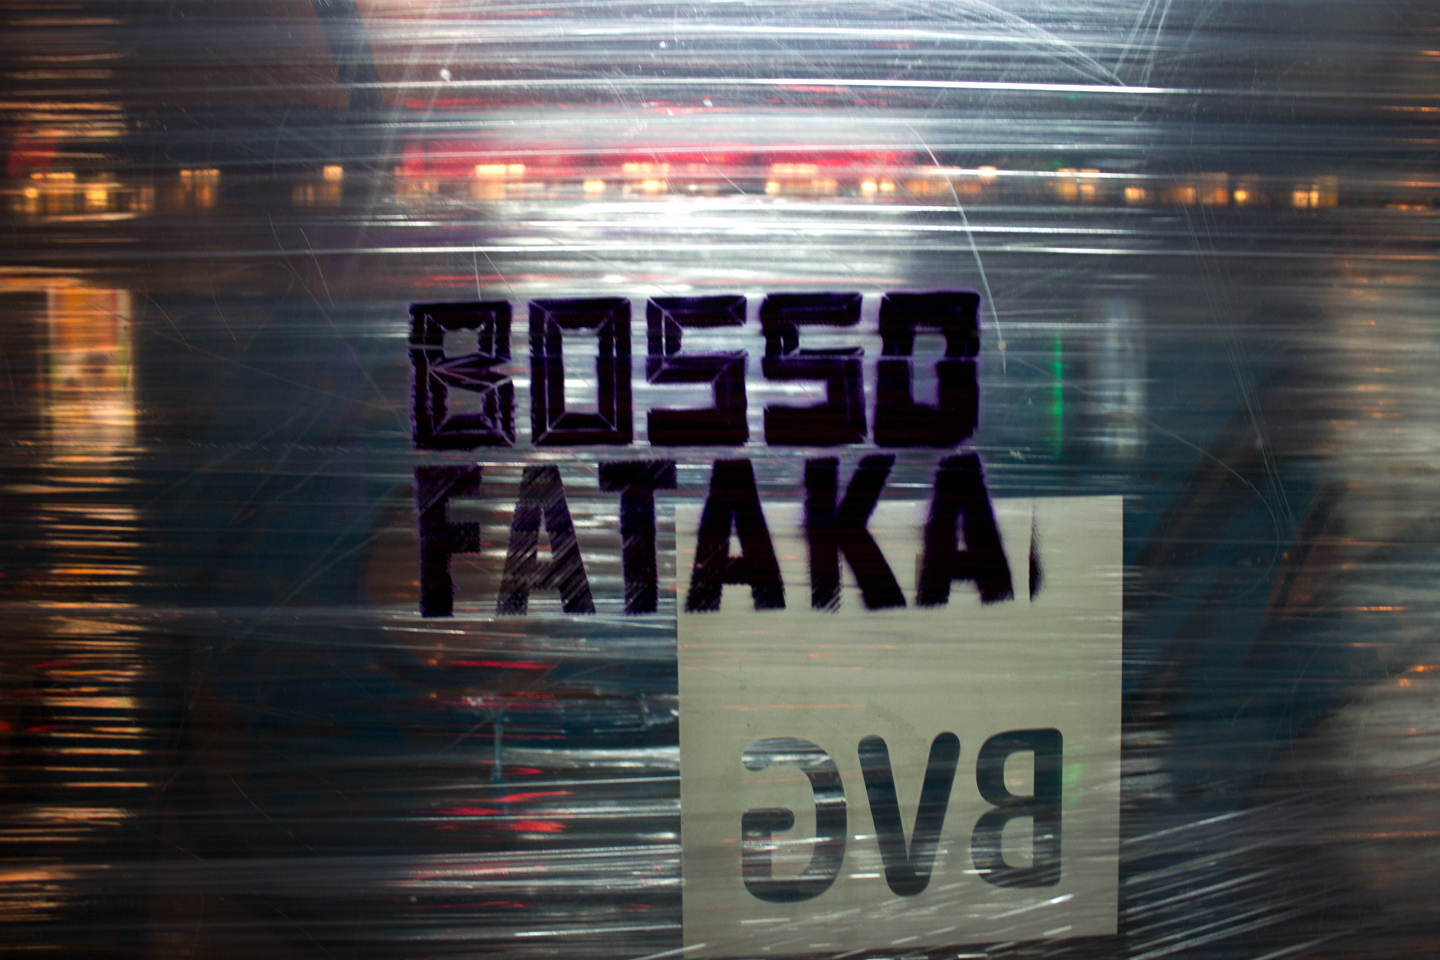 Instalation by Berlin based Street Art Team Bosso Fataka